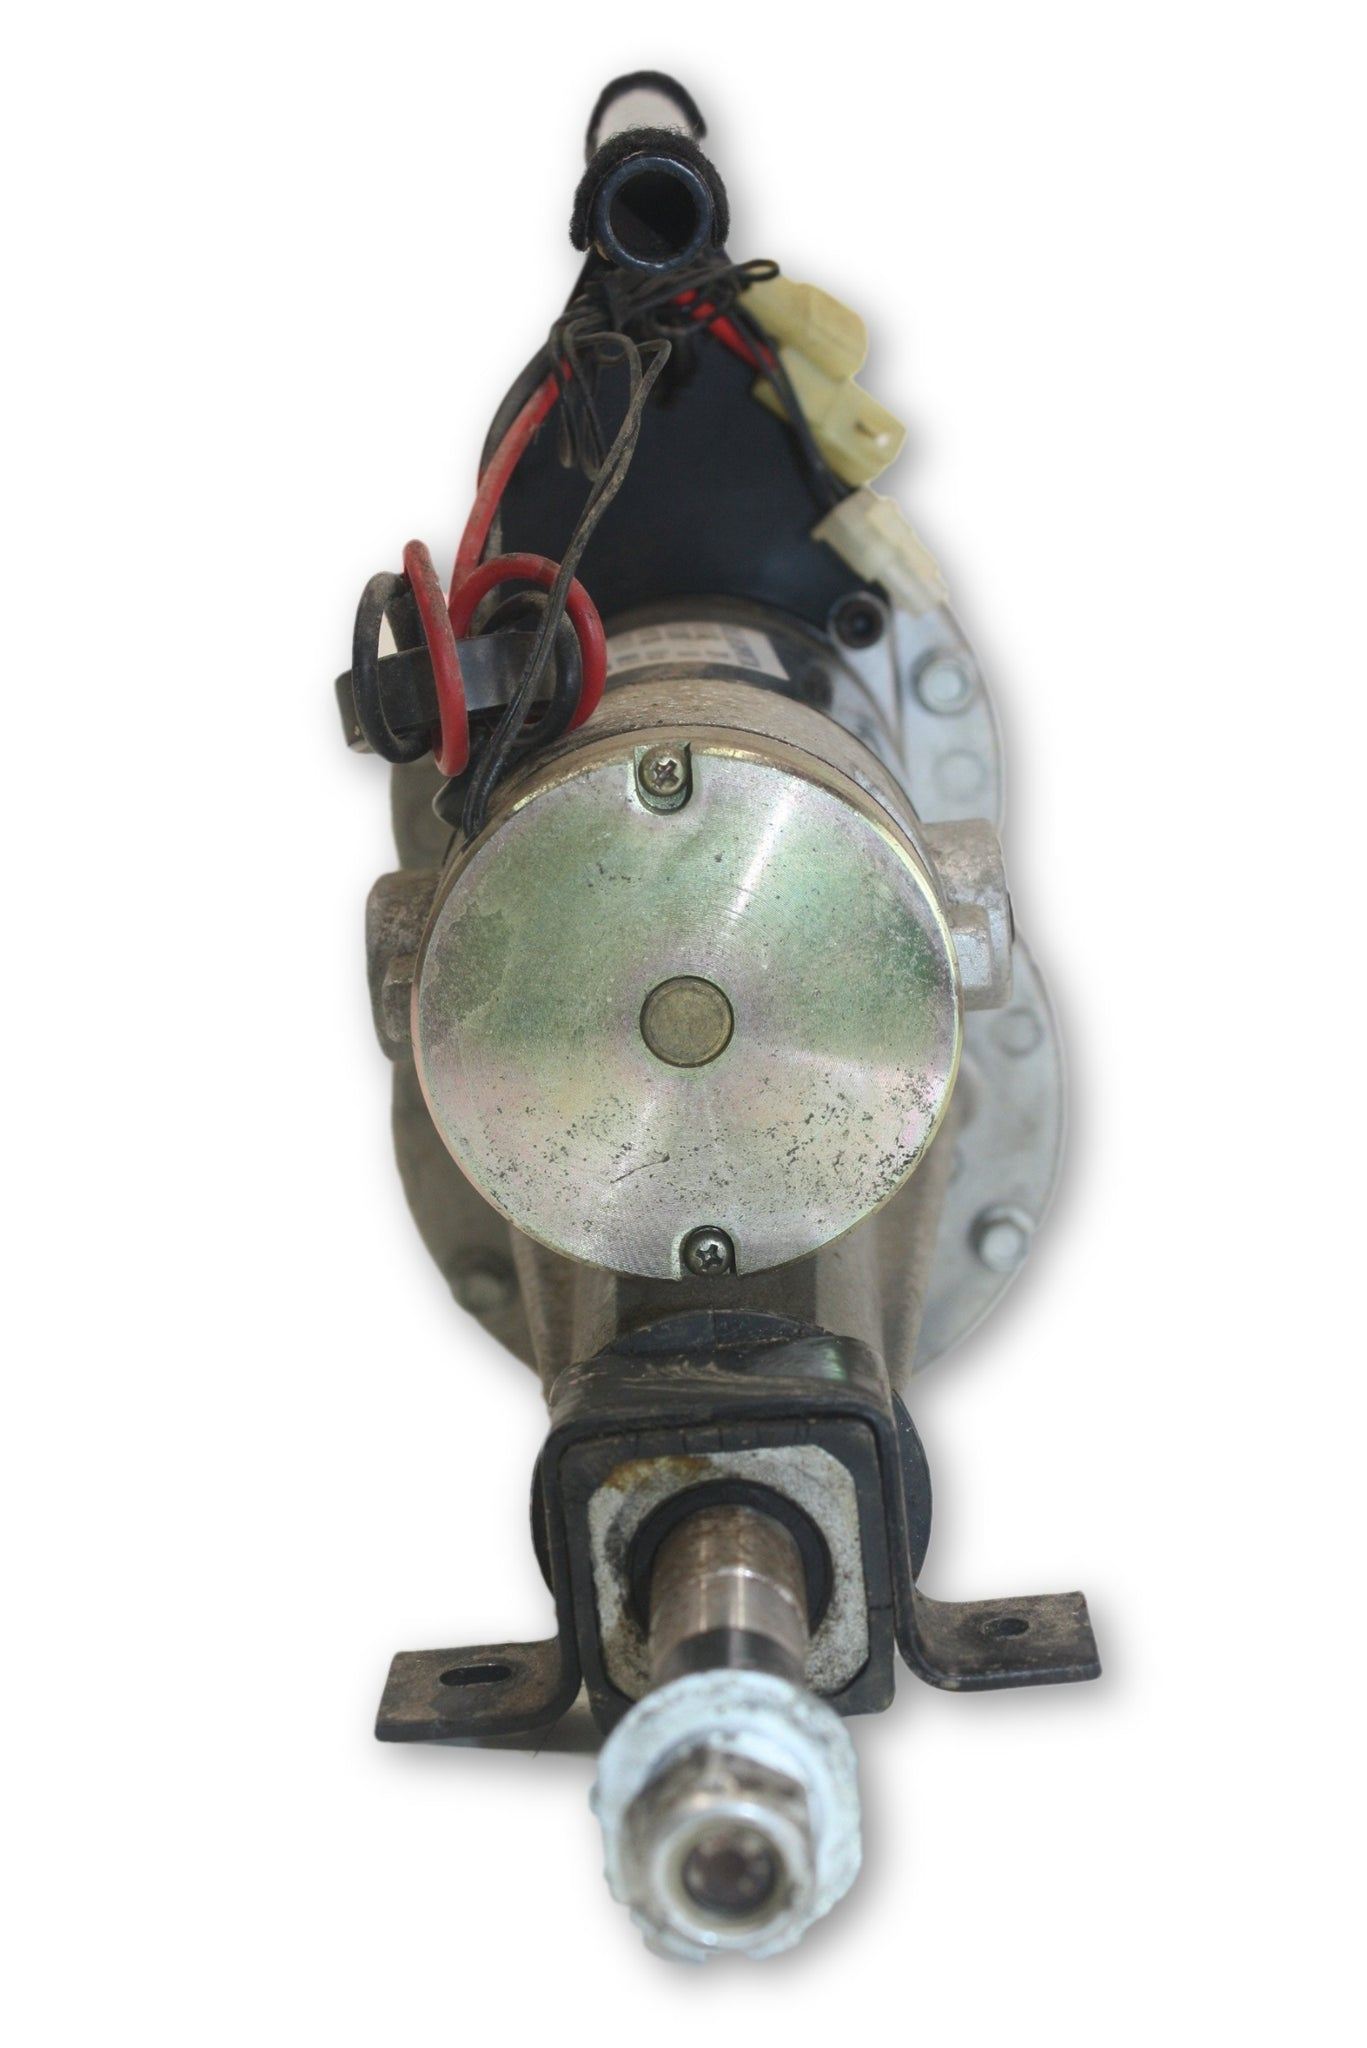 USED Pride Rally 3 Scooter Motor, Brake & Gearbox Assembly